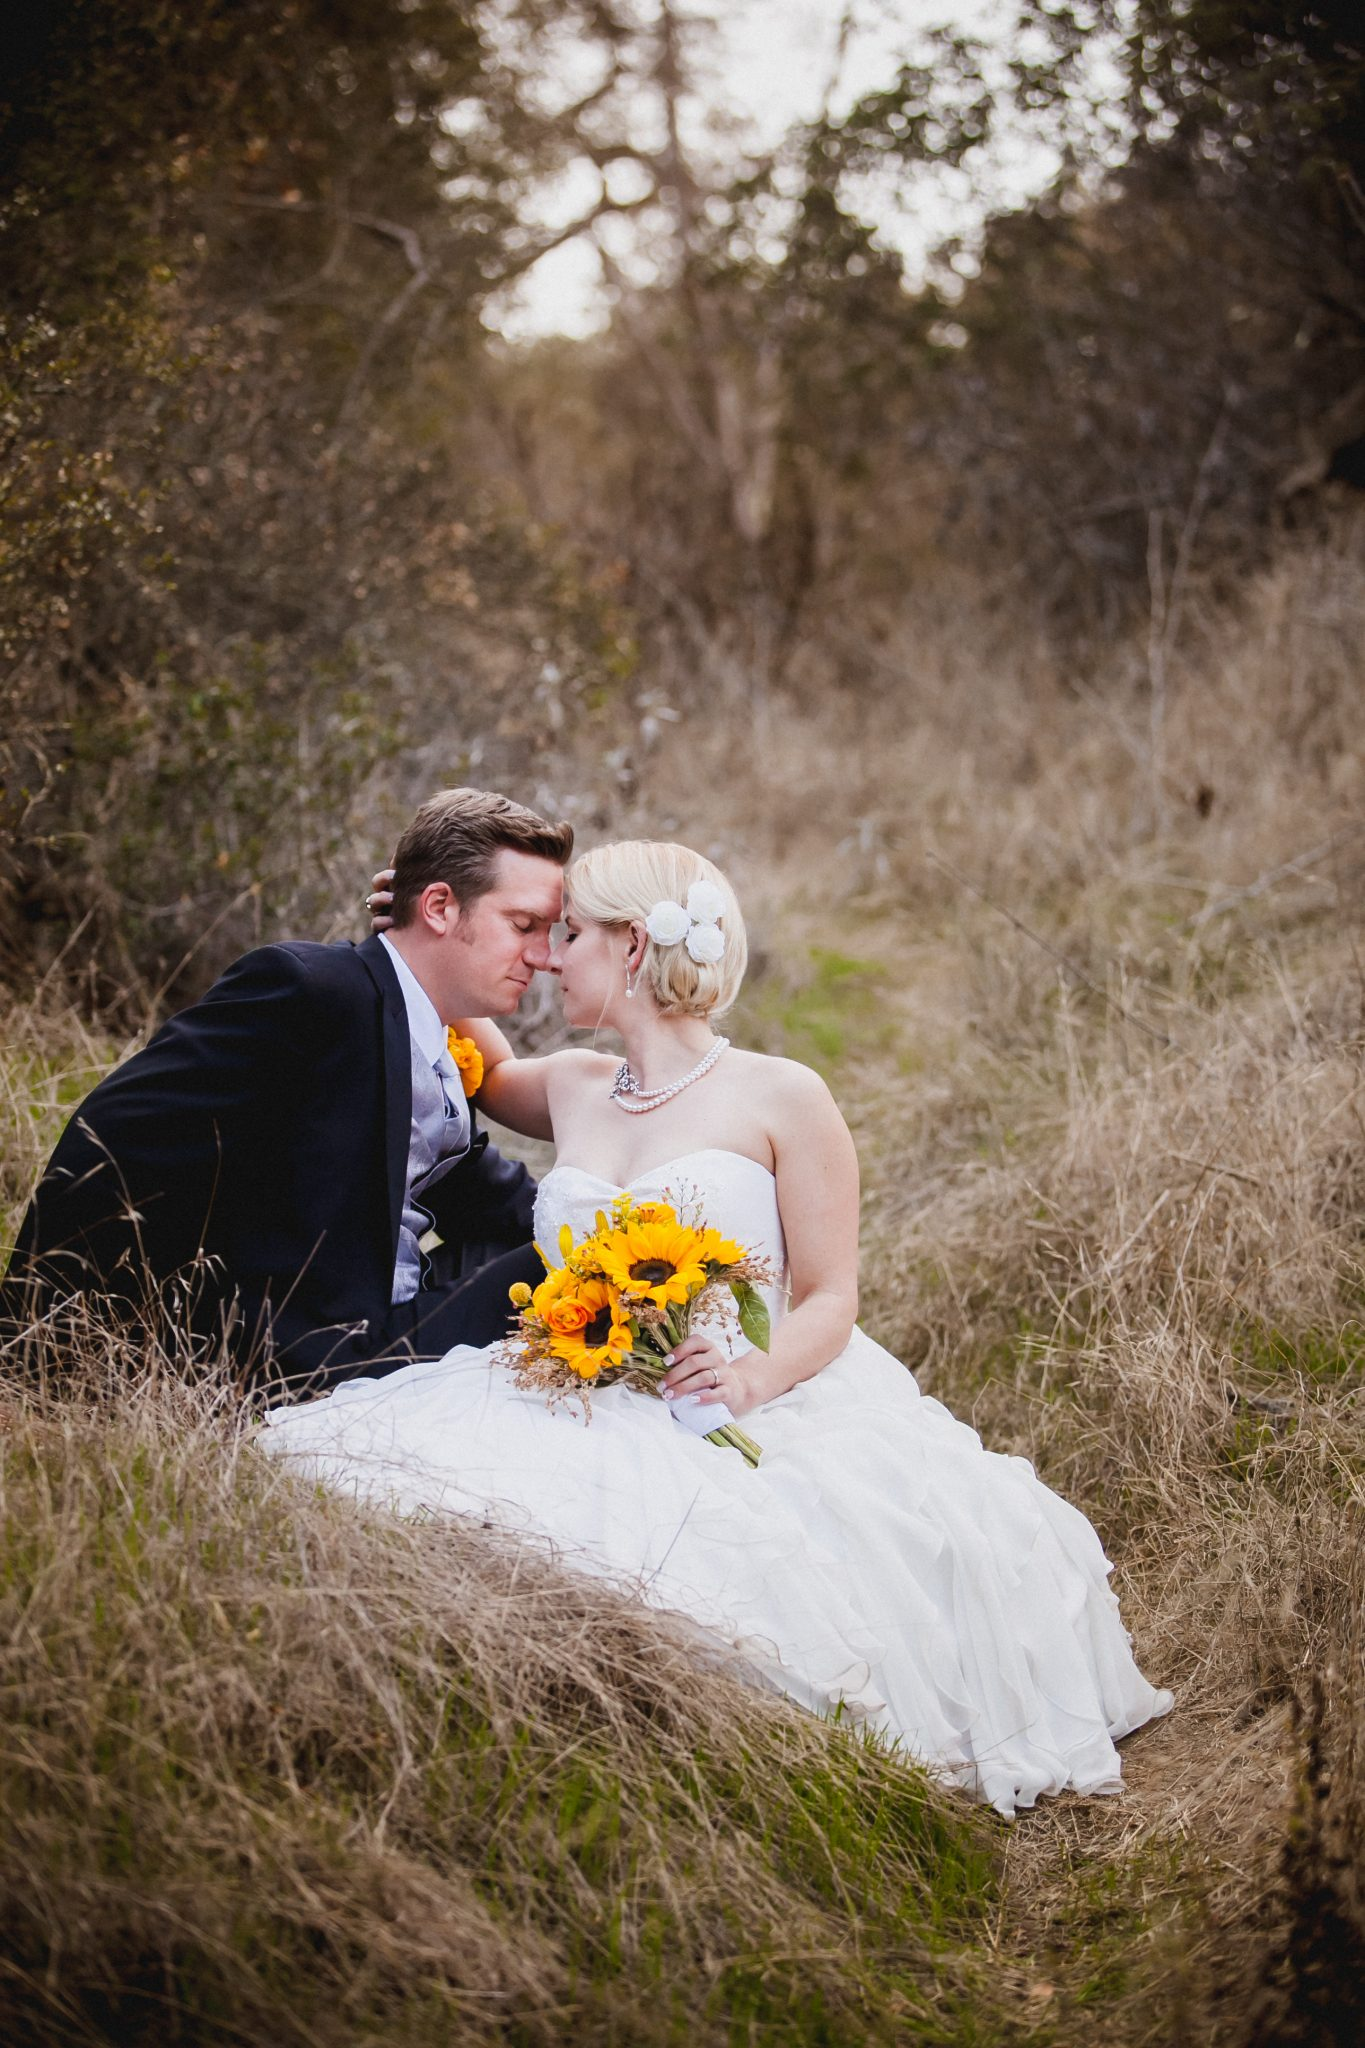 Intimate portrait of the couple sitting in a field